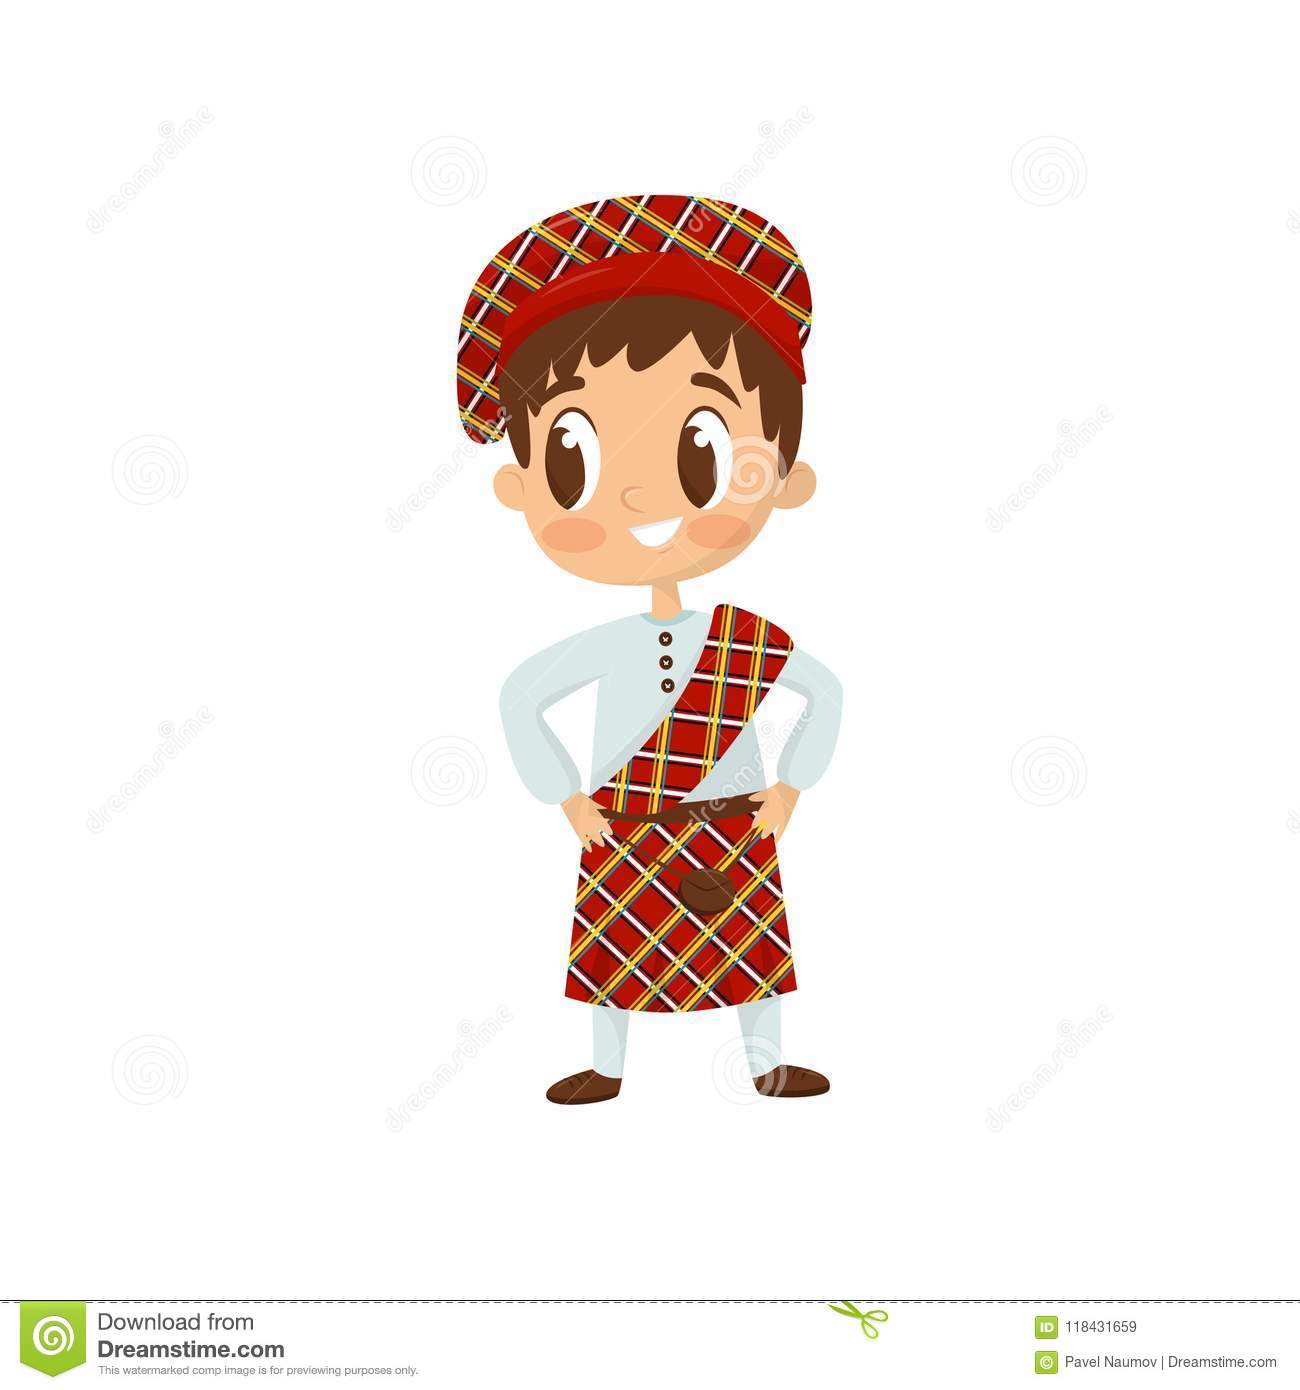 Flat vector icon of little boy in traditional Scottish kilt costume. Child wearing shirt, bright red plaid skirt and hat